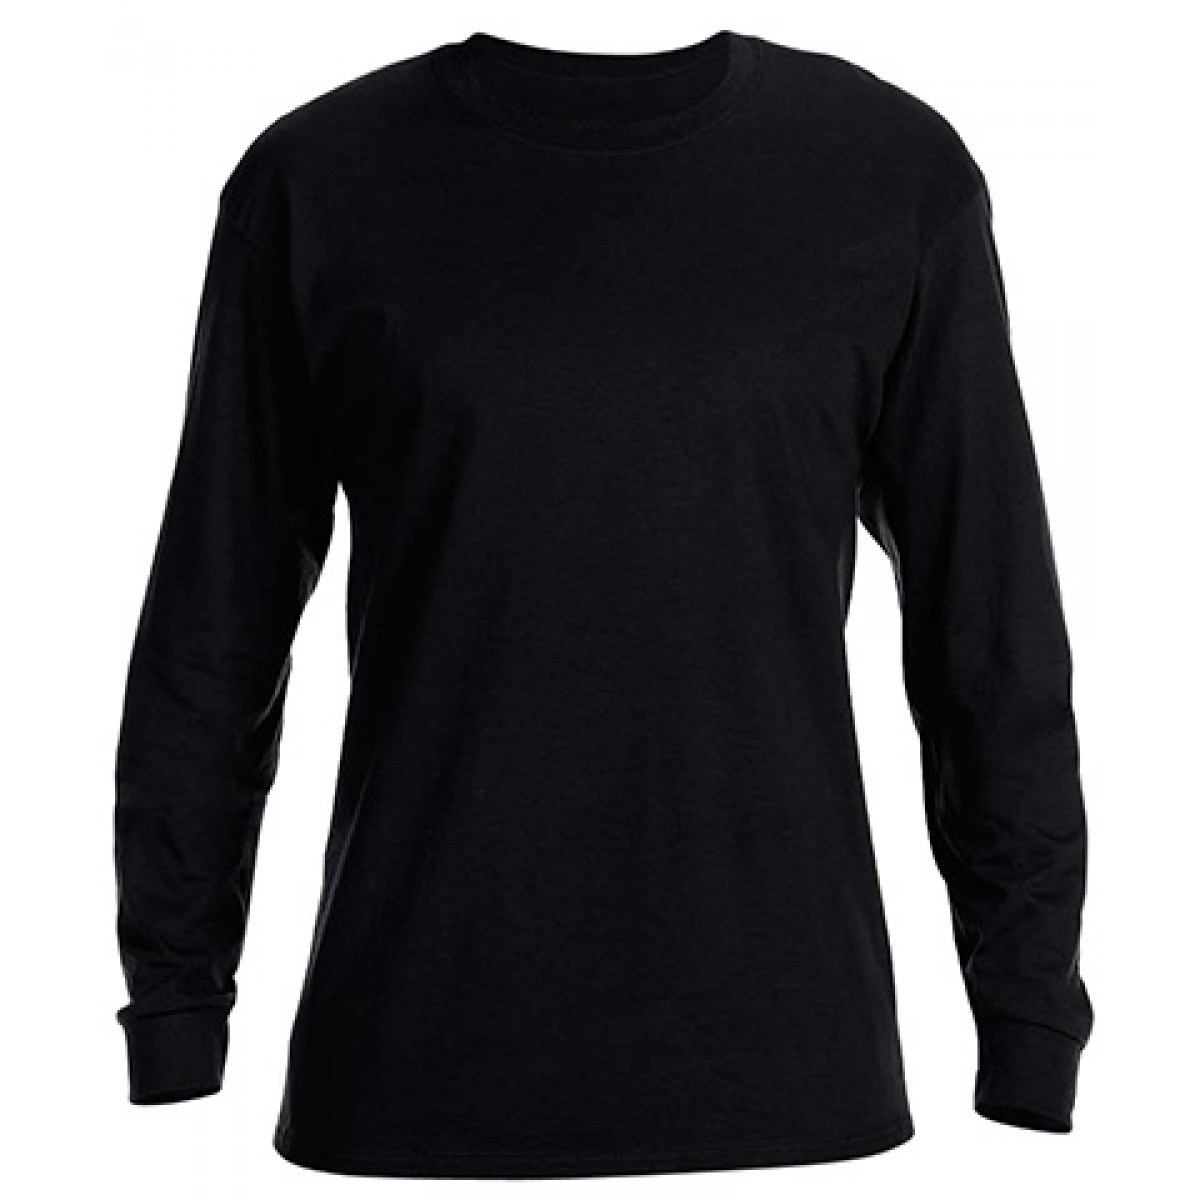 Basic Long Sleeve Crew Neck -Black-2XL